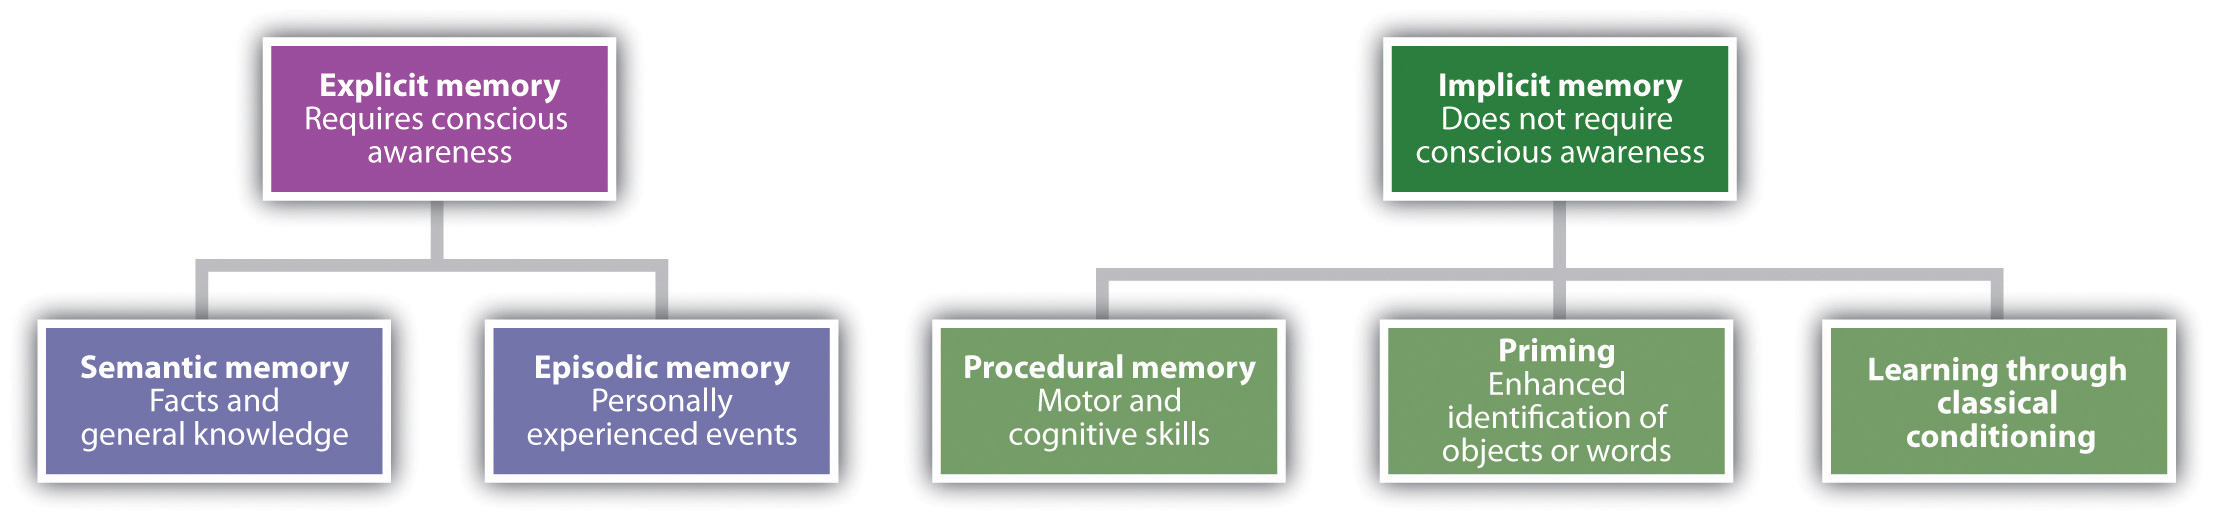 essays on memory and learning What is memory our memory serves as essays related to memory 1 main-memory database systems personality can also factor into learning and memory.